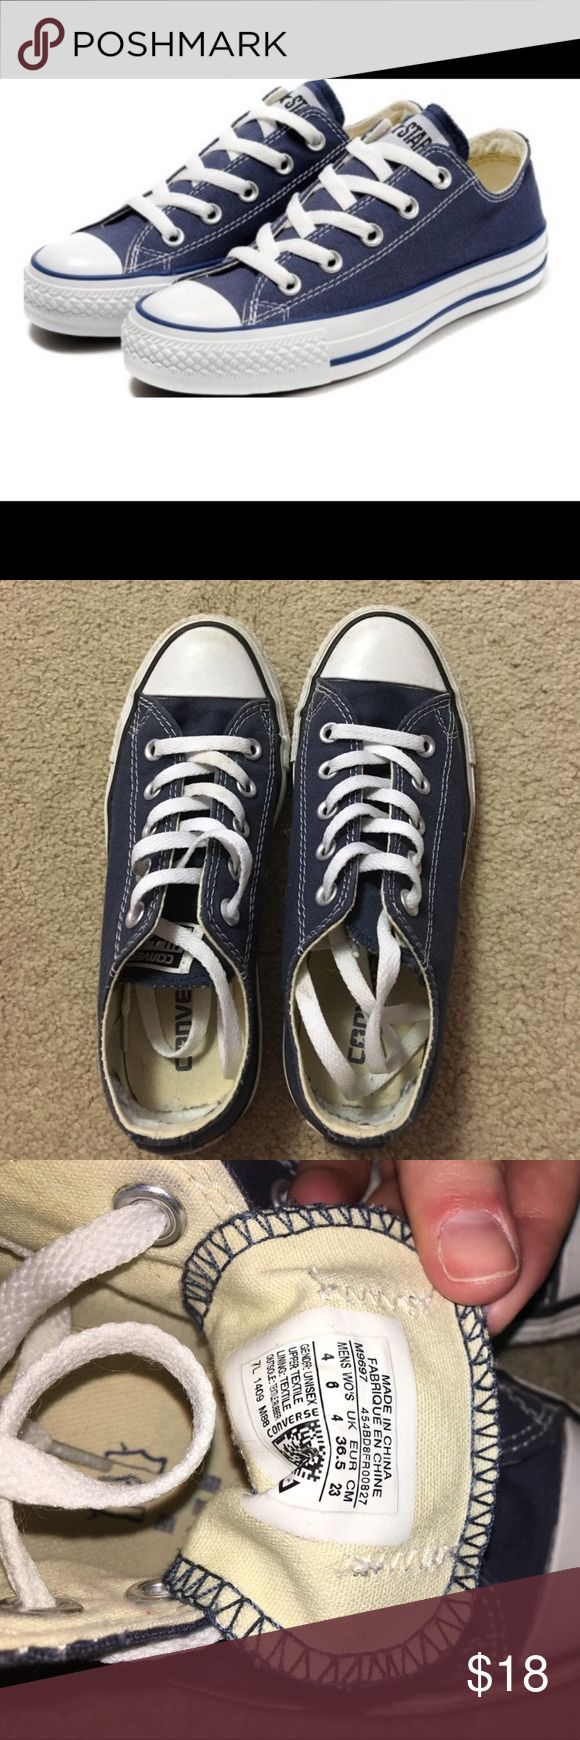 Navy Converse Size 6 Like New Slightly used. In great condition. Look like new! Converse Shoes Sneakers